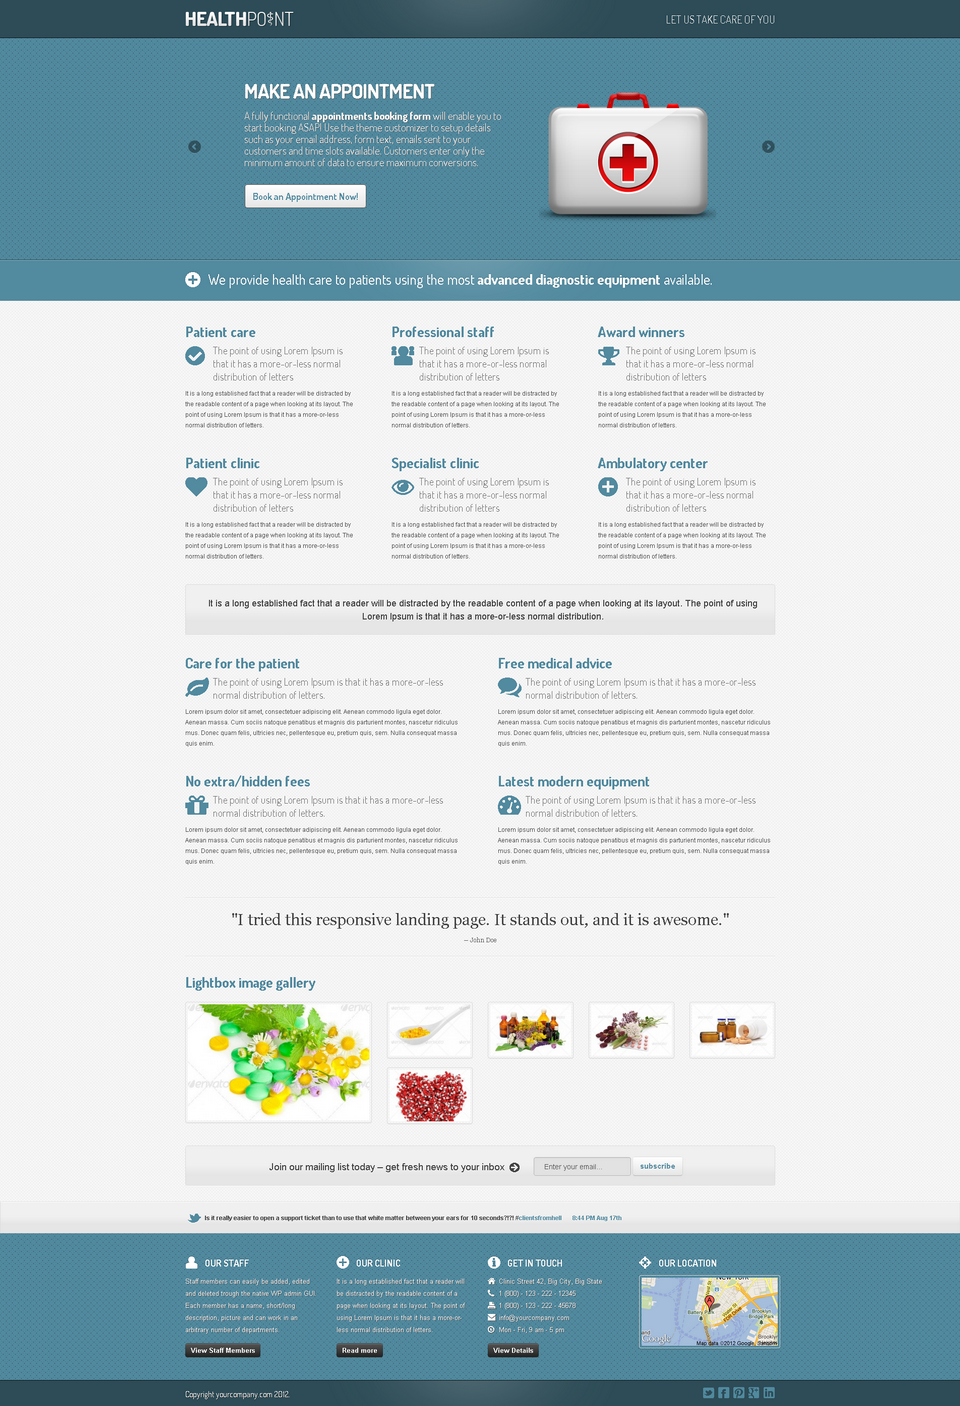 Health Point - Responsive WordPress Landing Page - Health Point - Blue theme with Parallax slider